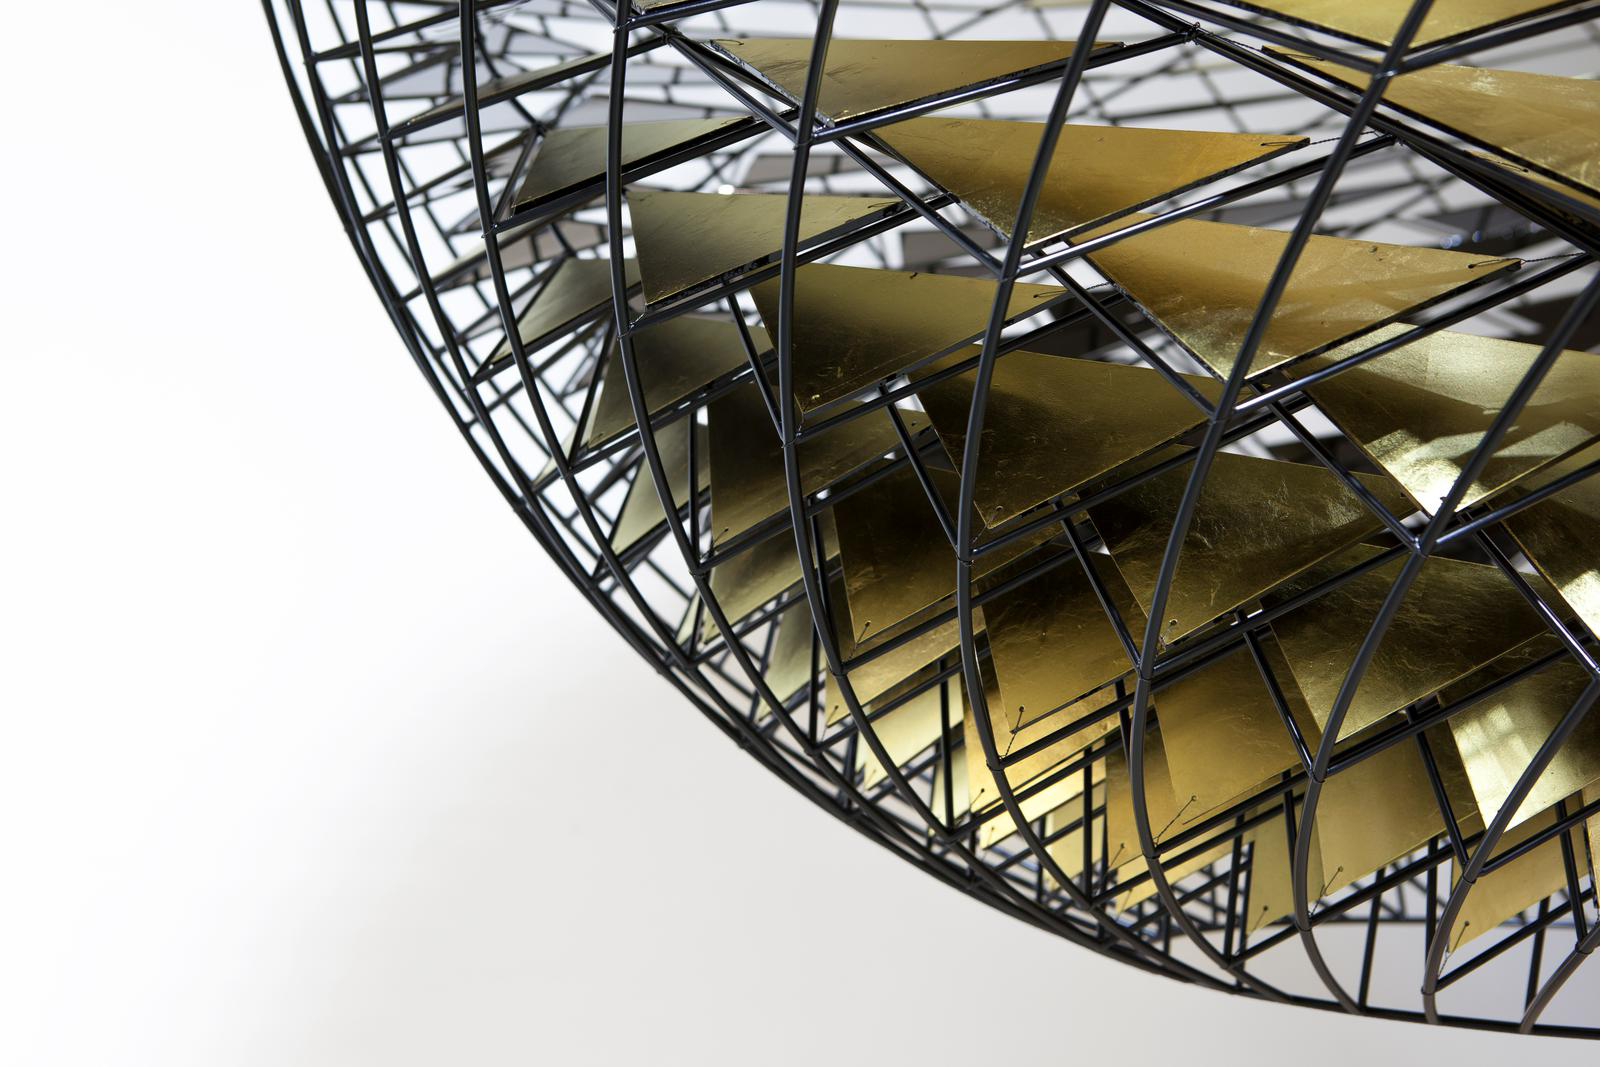 Olafur eliasson aurum sphere 2015 photo jens ziehe 01 original